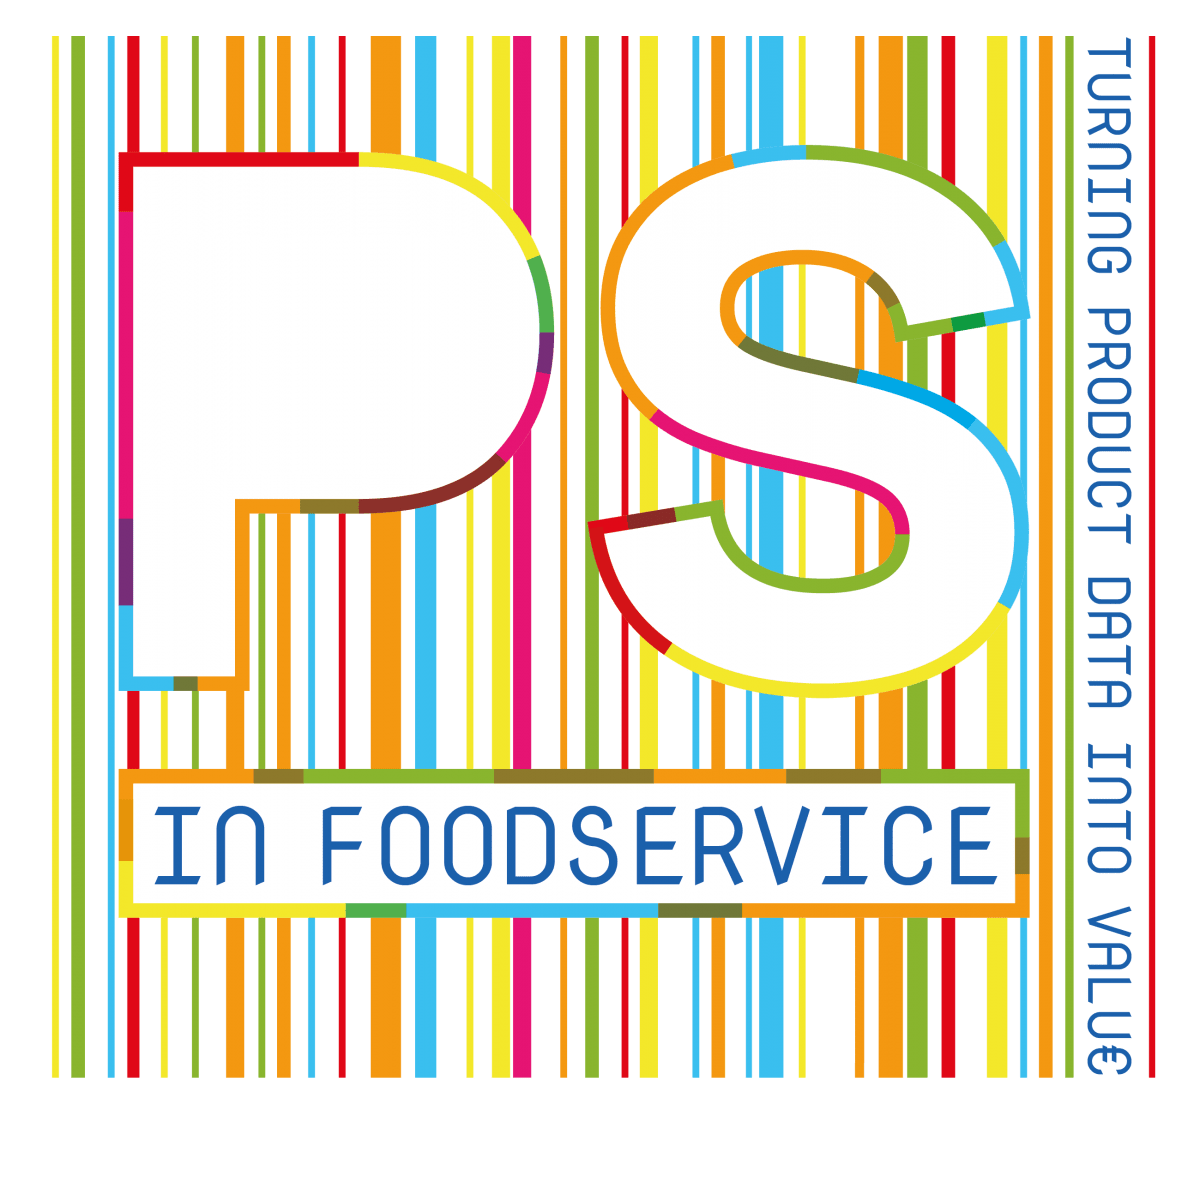 logo ps in foodservice met slogan